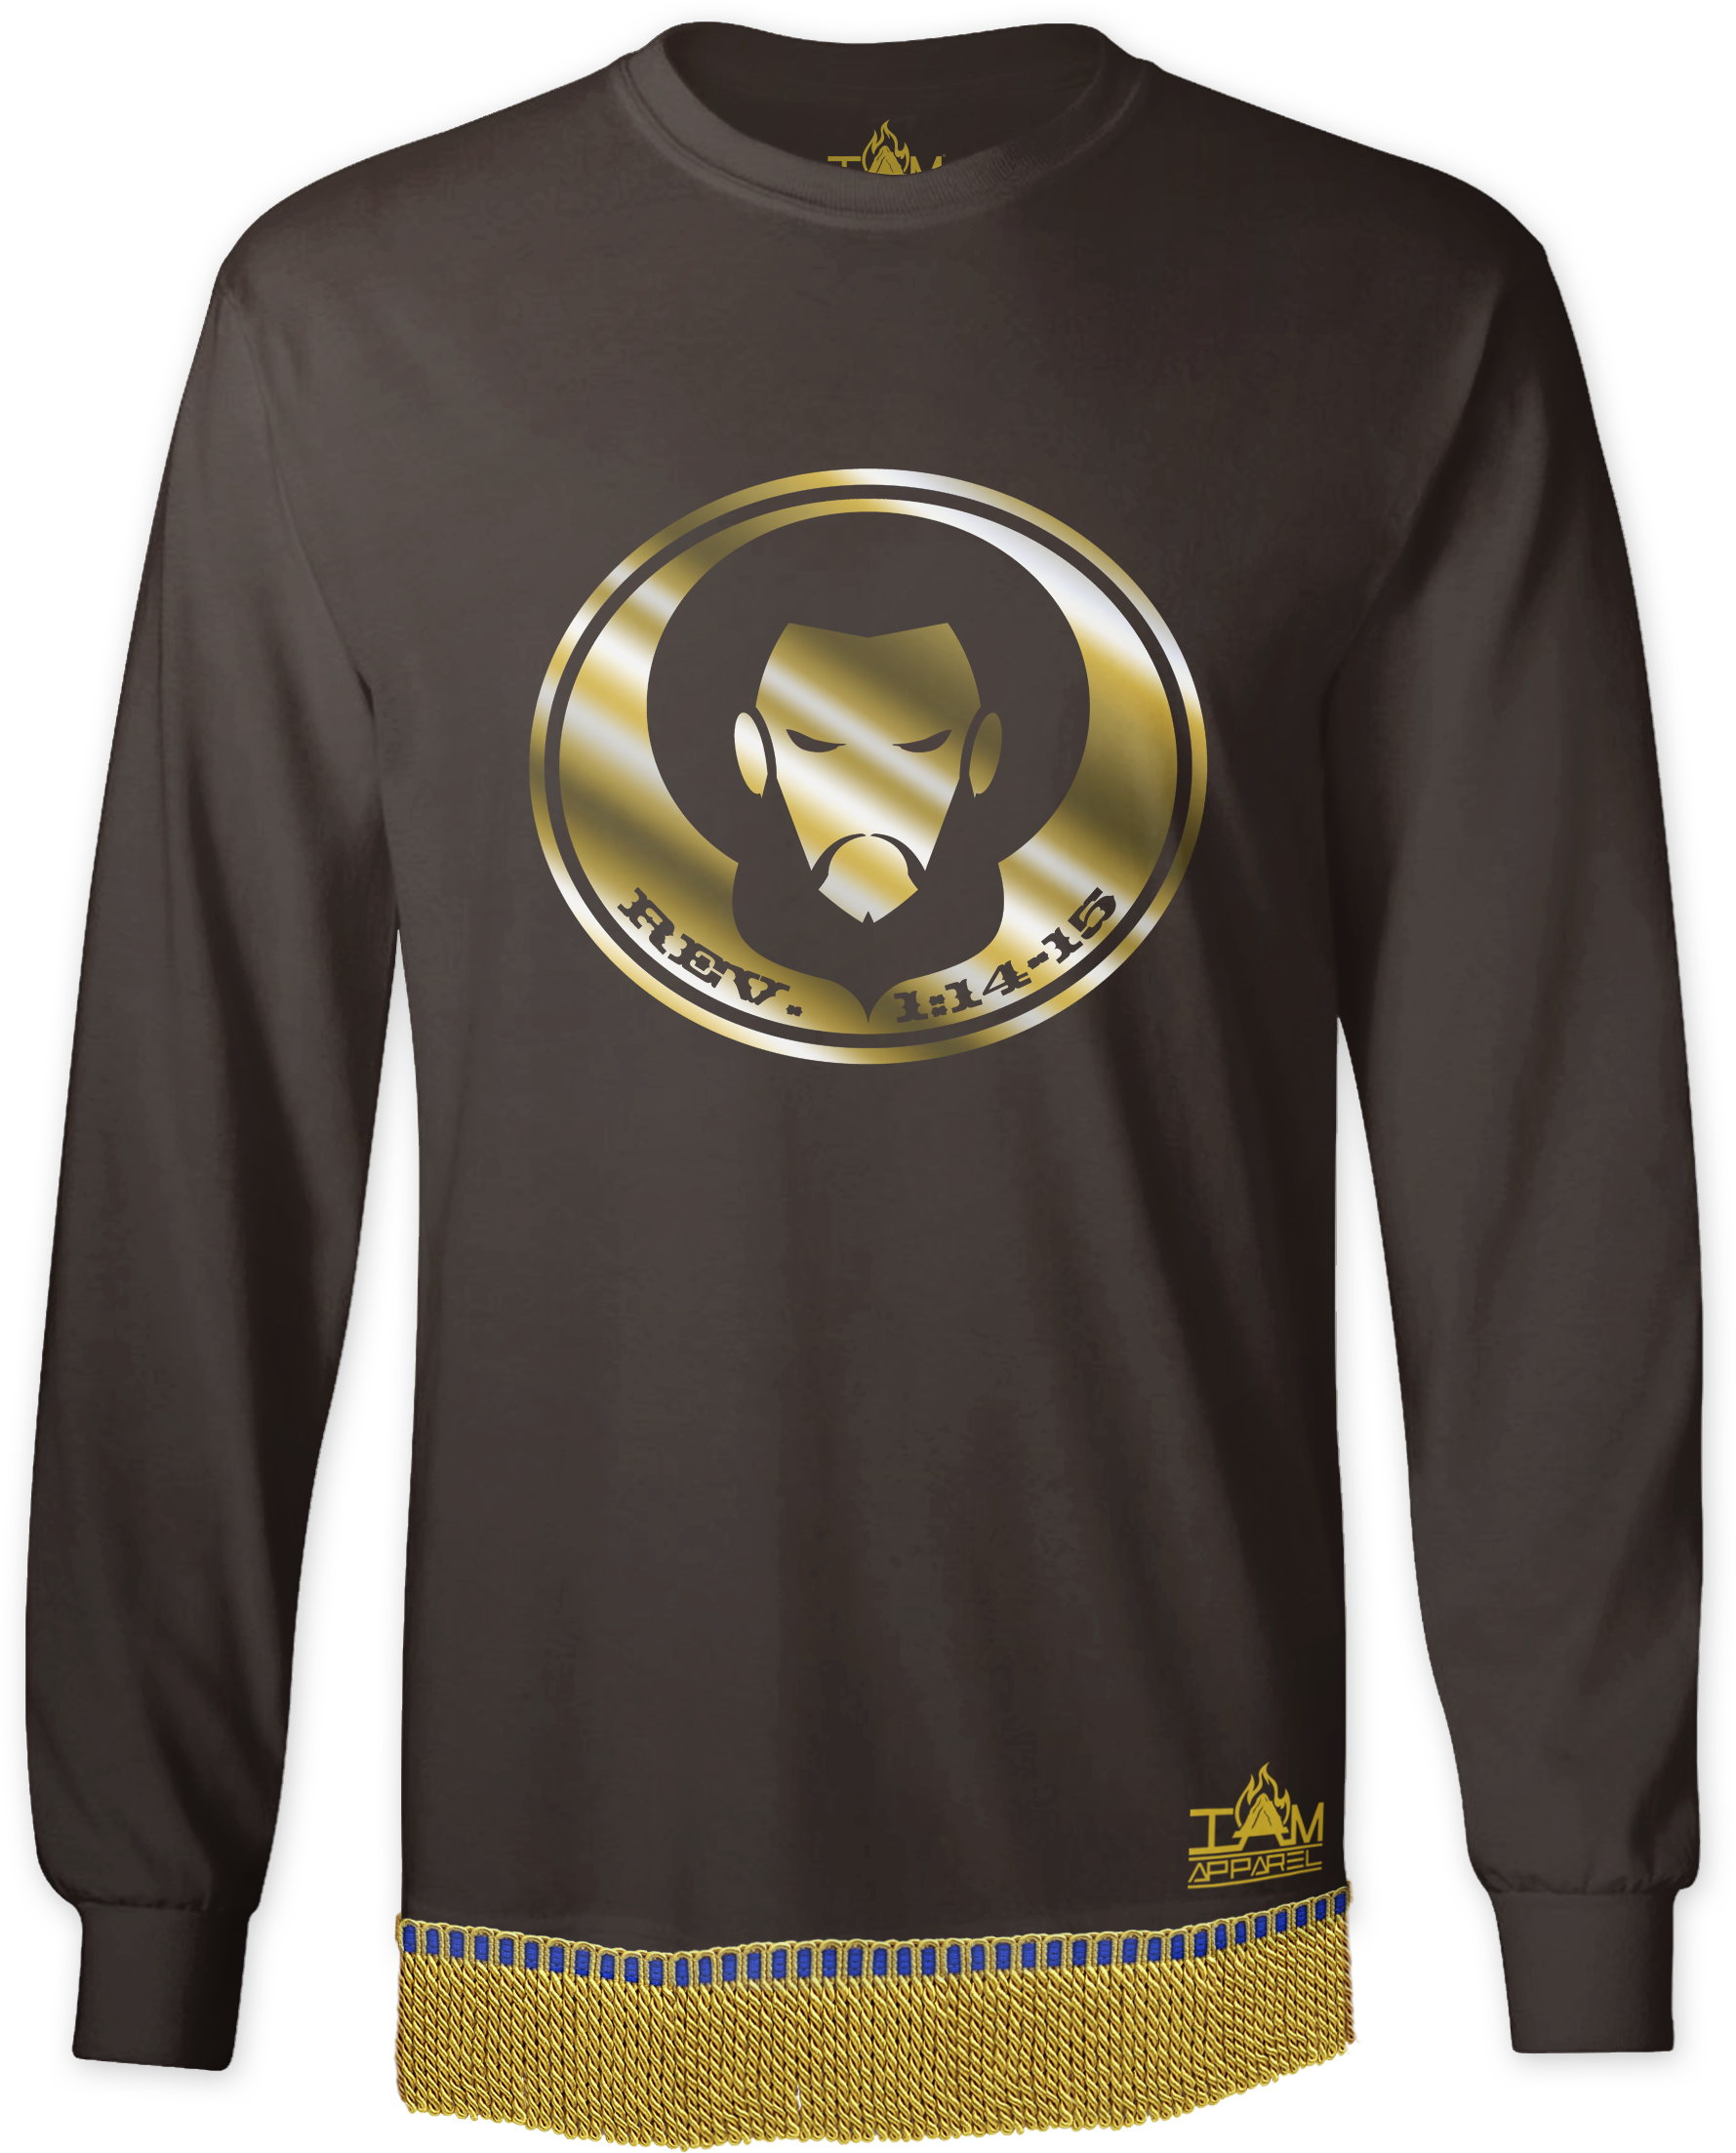 Men's GOLDEN SERIES Long Sleeved with image of Christ T-Shirt with fringe. 00201